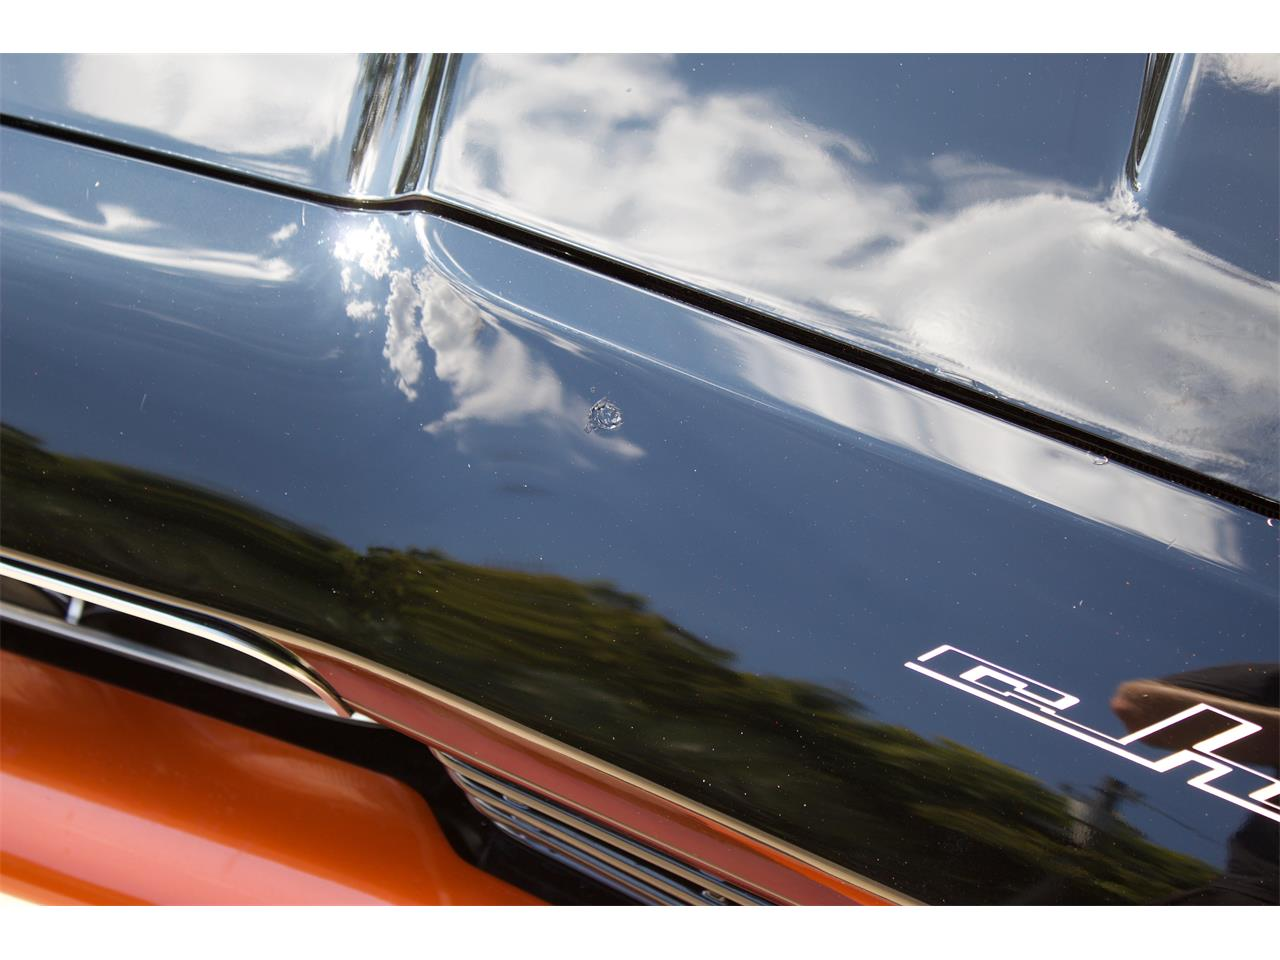 Large Picture of '68 Chevrolet Impala SS427 located in Florida - $44,950.00 - QYQC